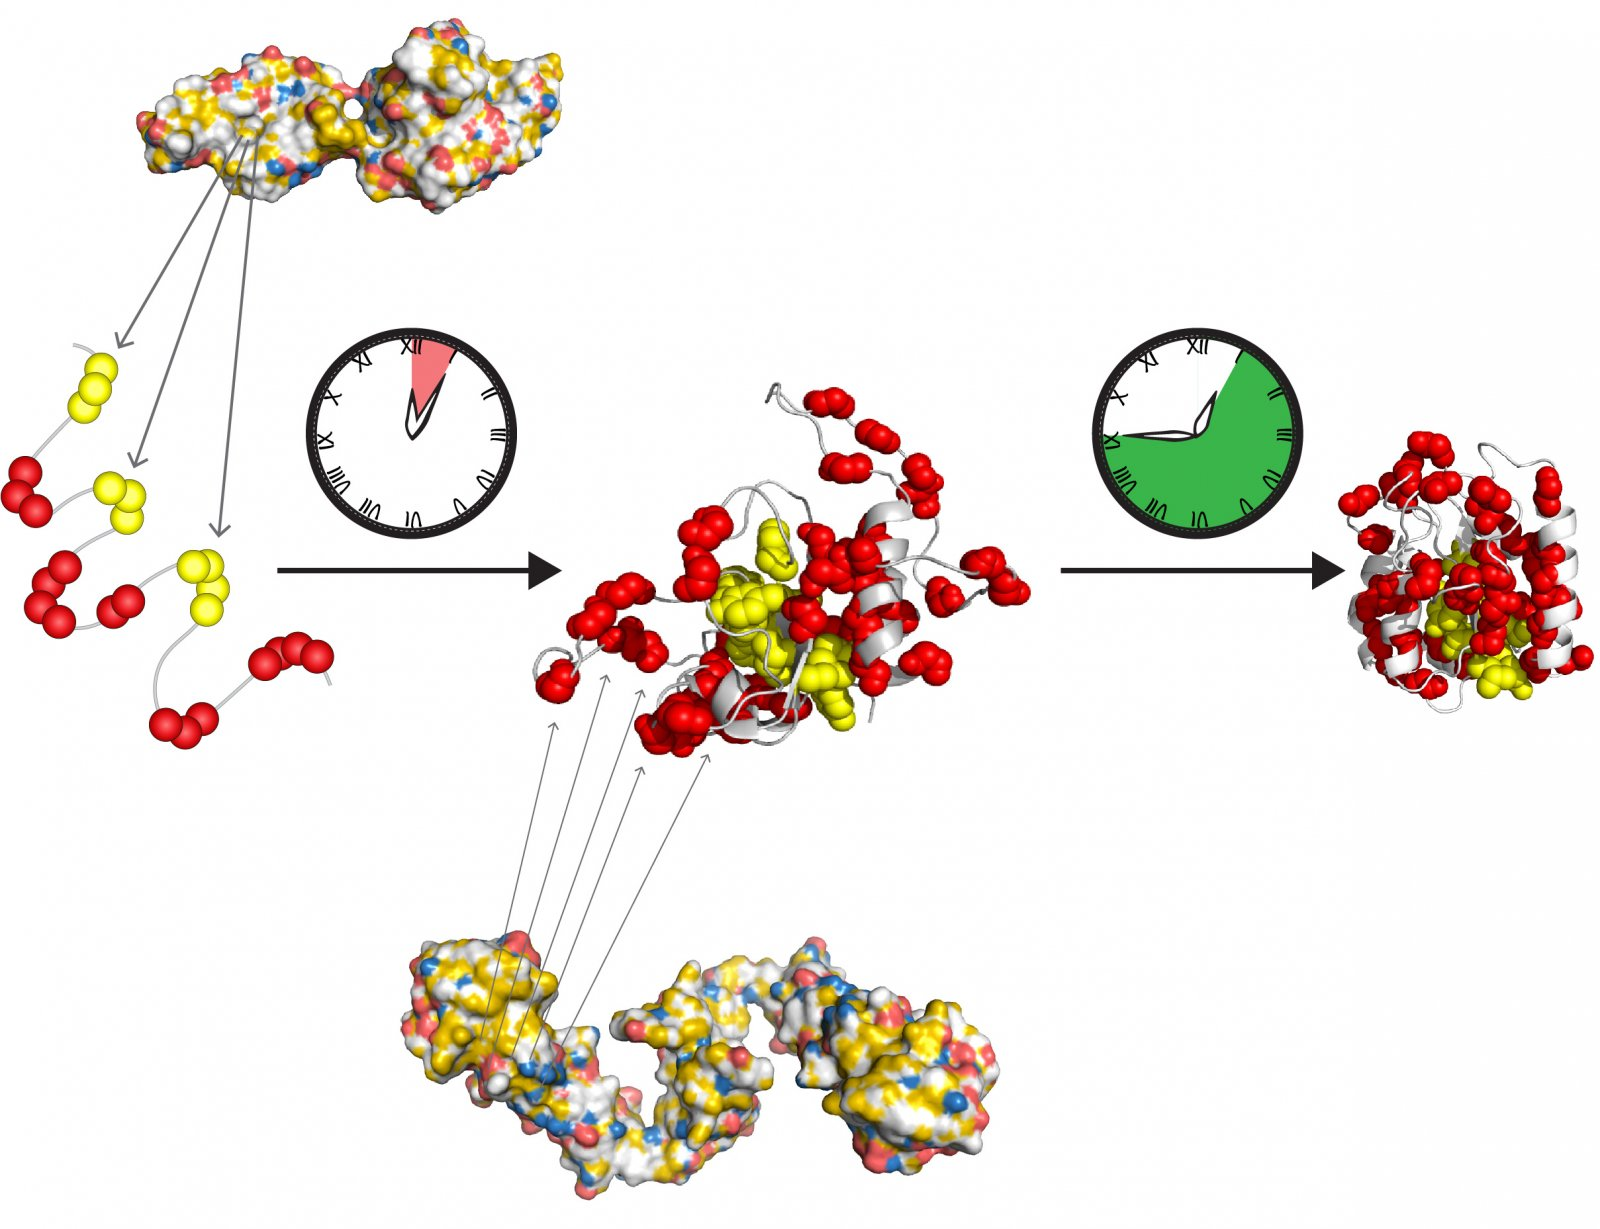 The molecular chaperones Hsp70 and Hsp90 form a fast-acting relay team to prepare proteins to fold into their active state on their own.